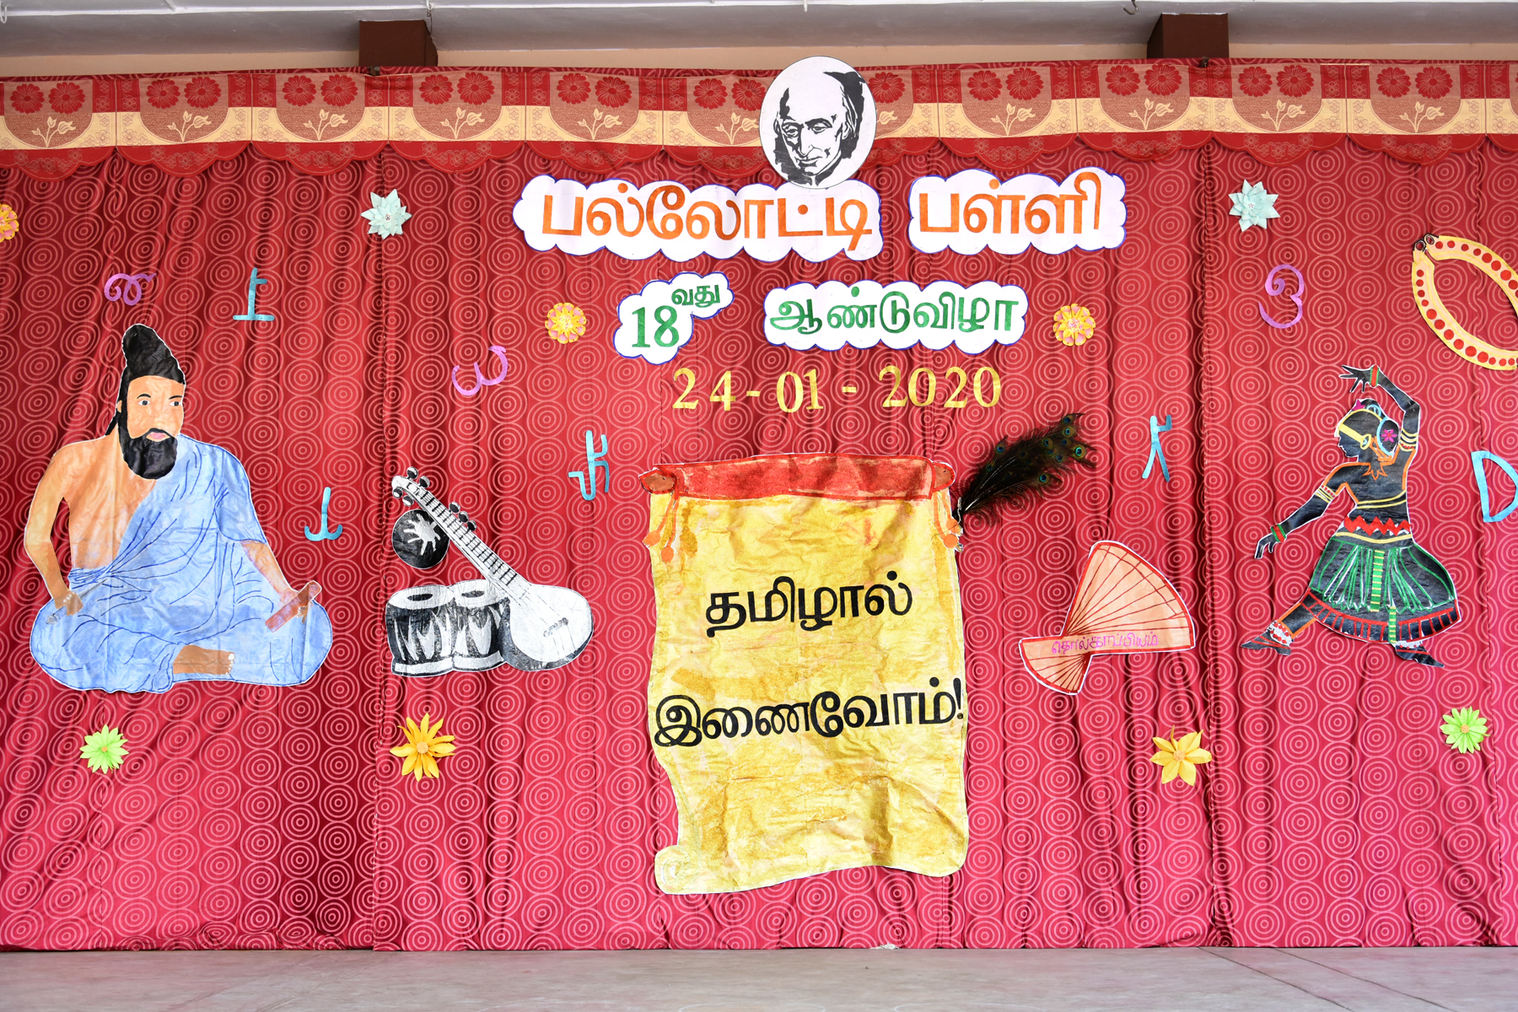 Tamil binds - Moto of our school festival 2019-2020